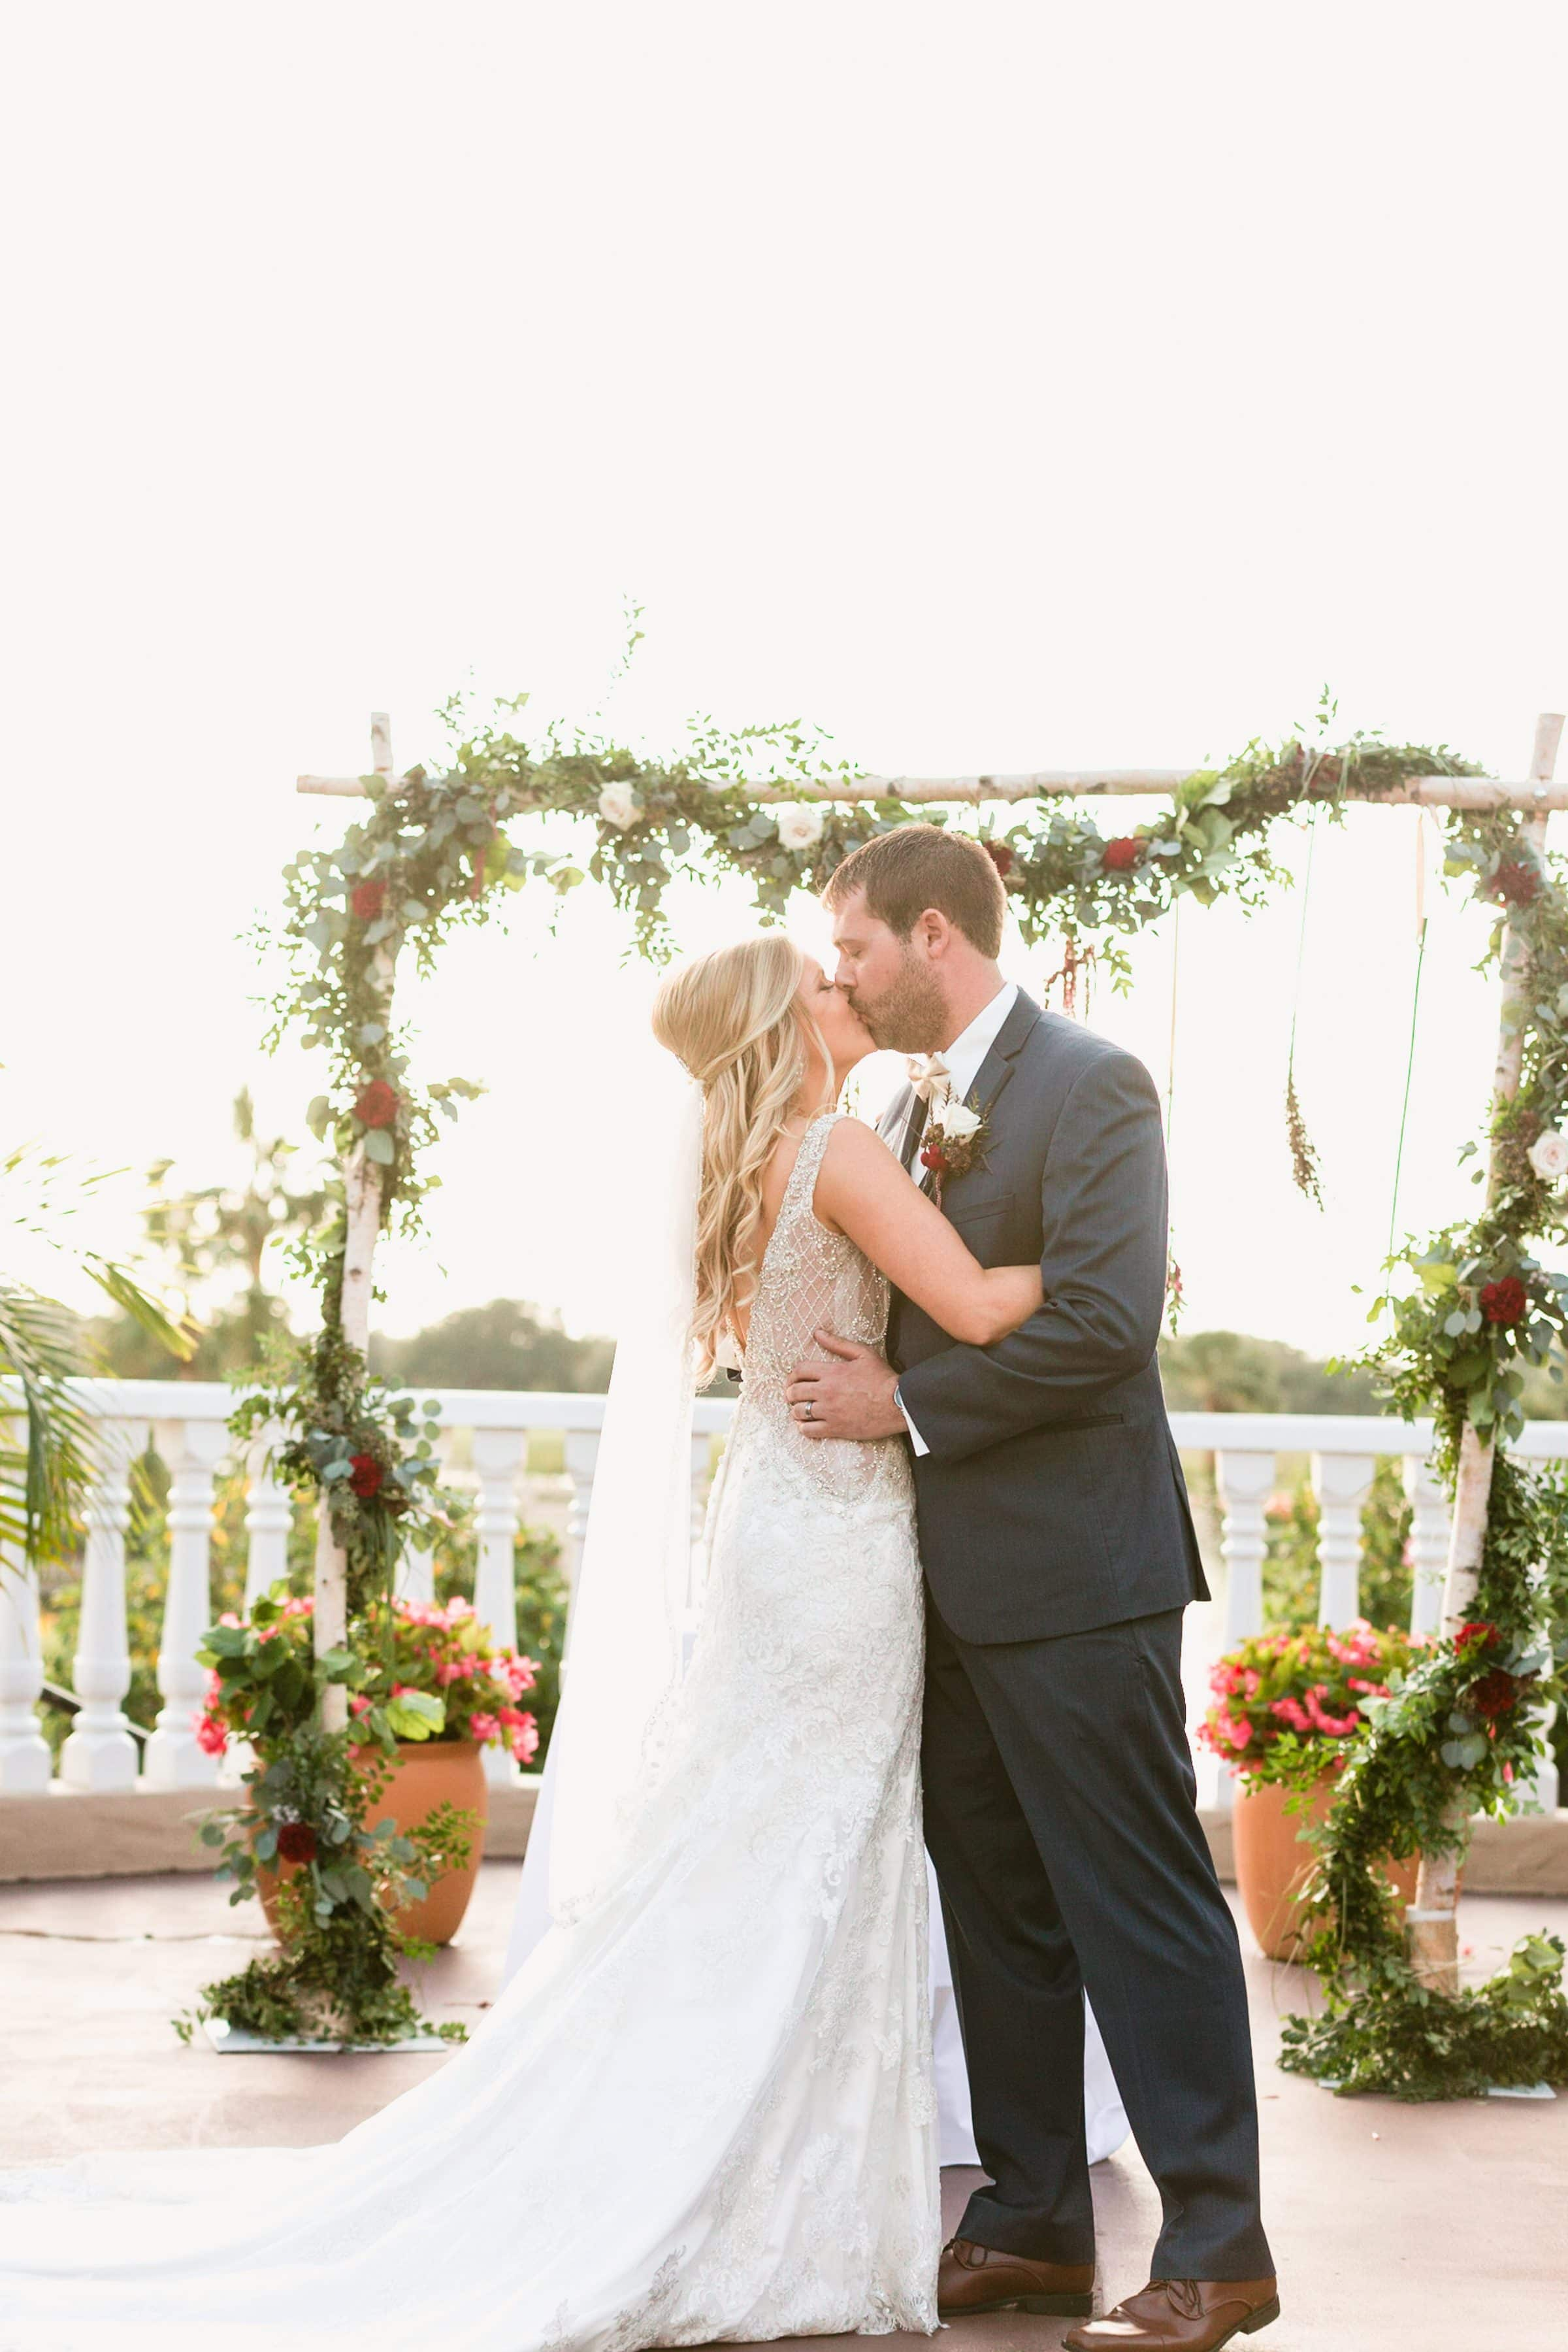 First kiss in front of rustic wooden trellis